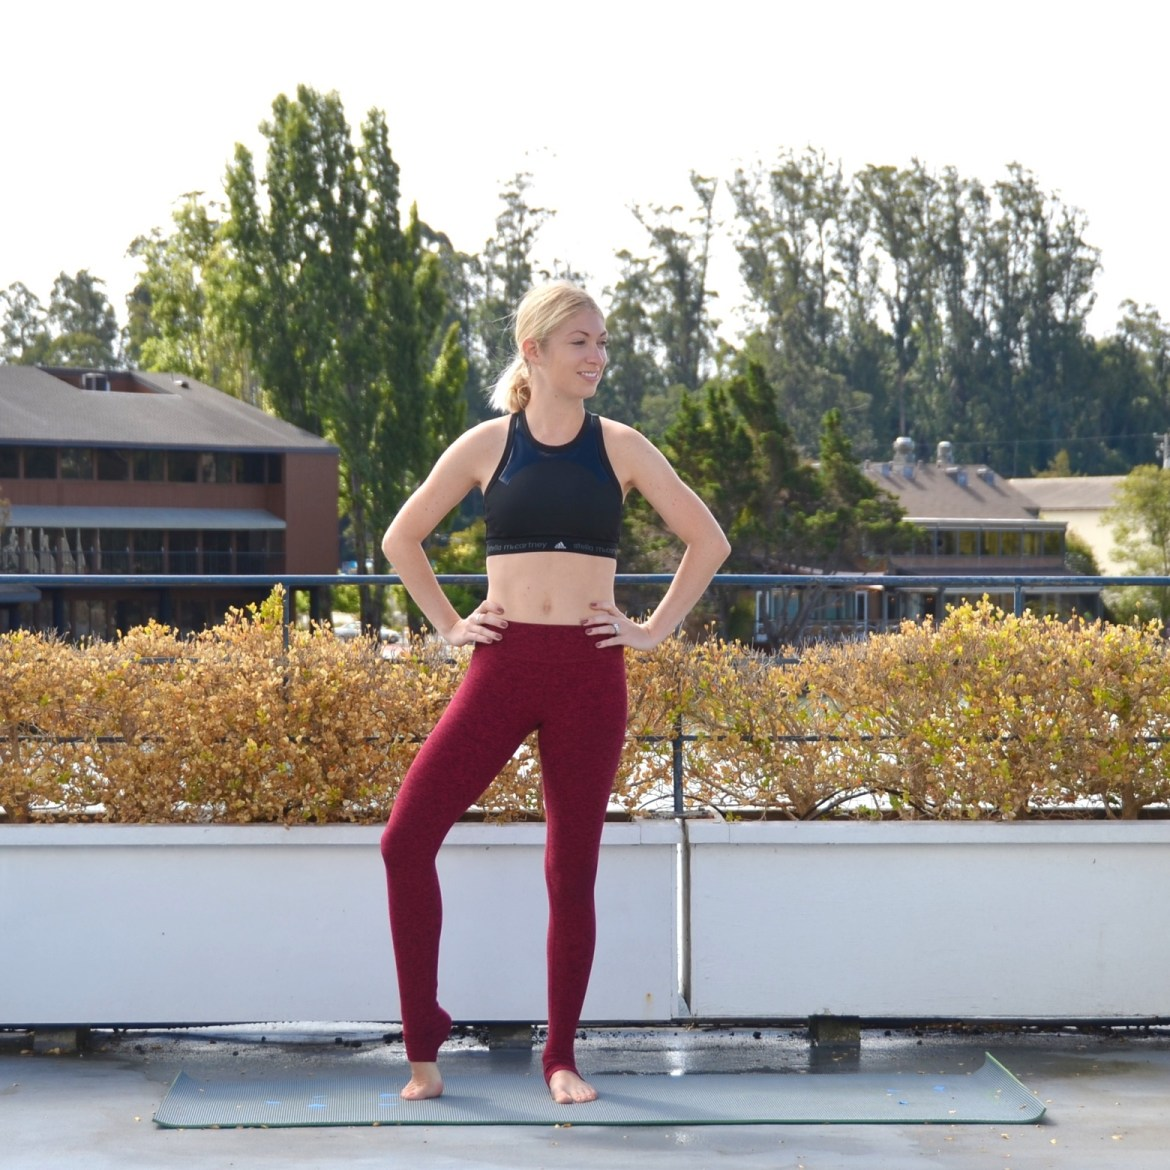 17 of the Best and Worst Yoga and Workout Pants, Review by Stefanie of The Style Safari